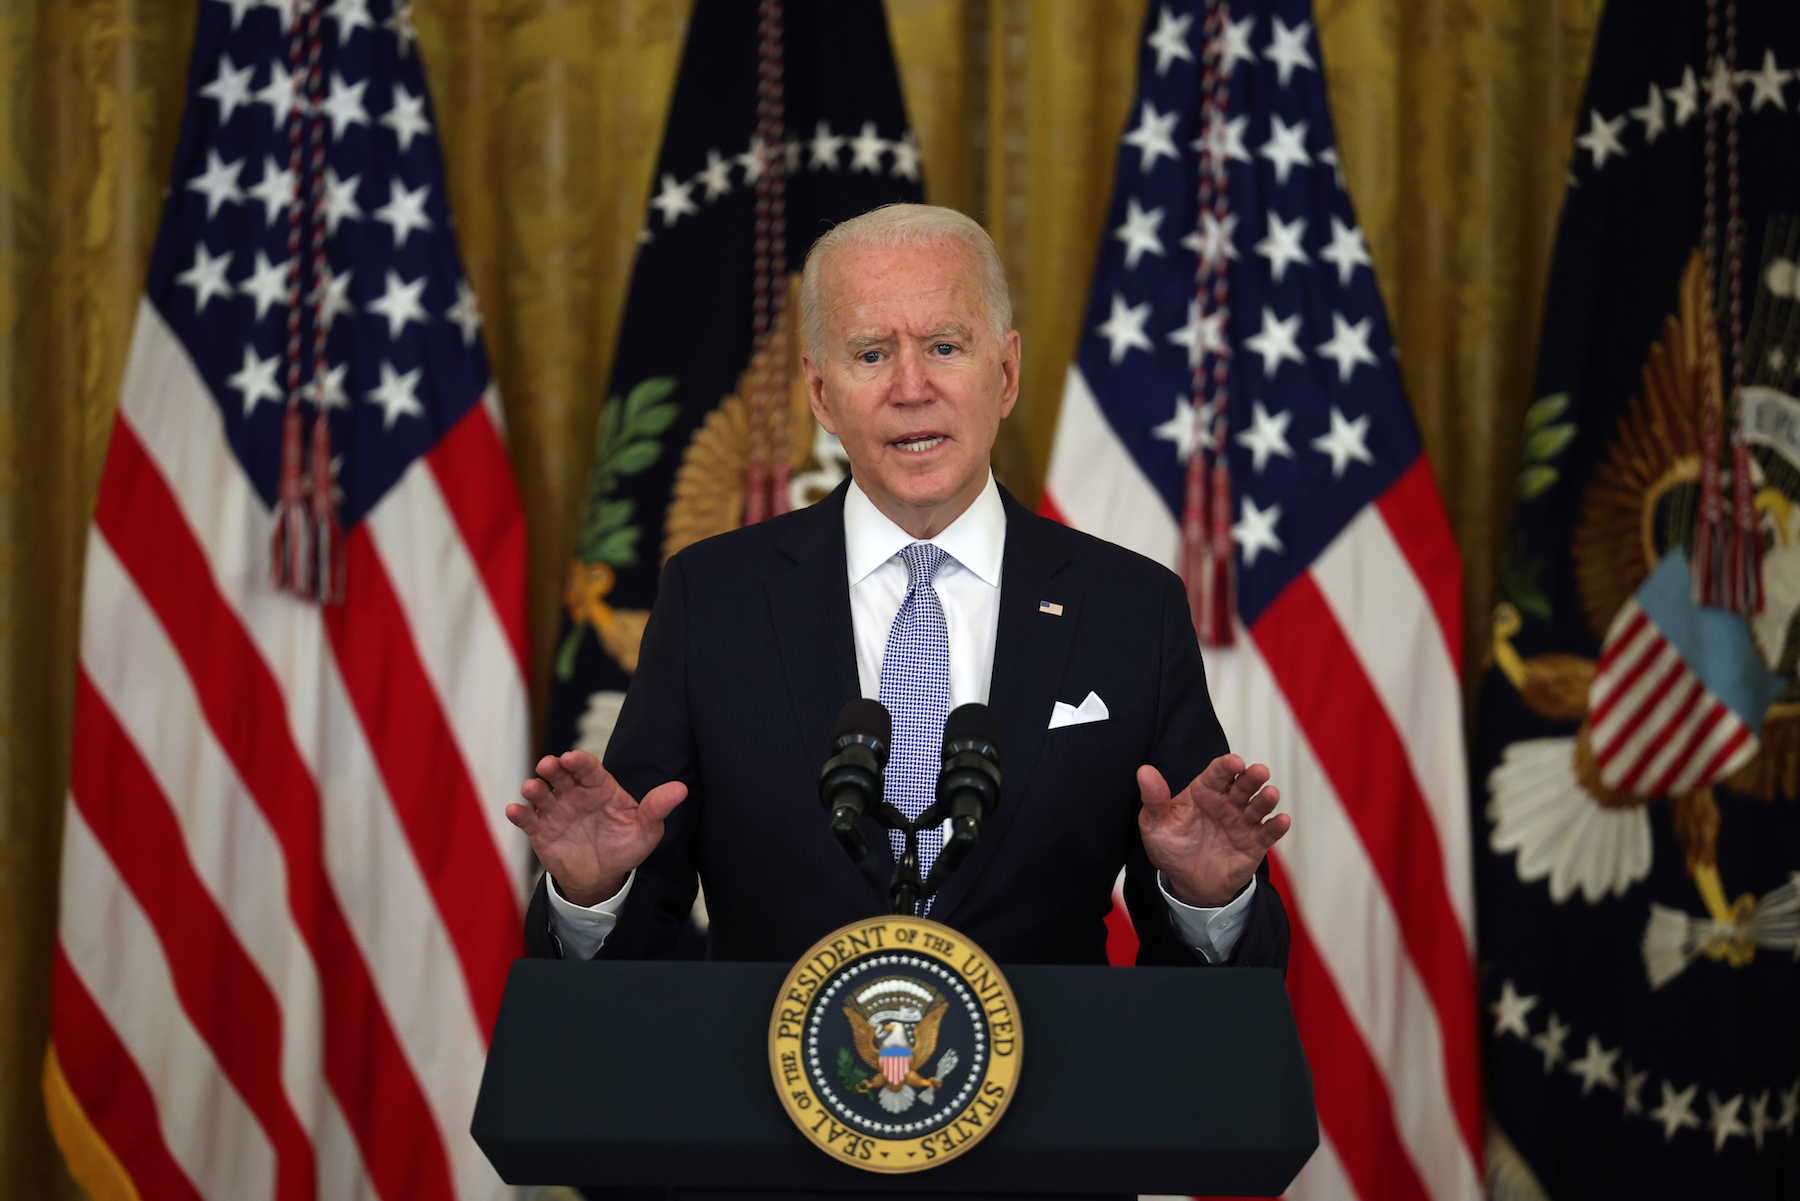 Joe Biden standing at a lectern bearing the presidential seal, before a background of U.S. flags